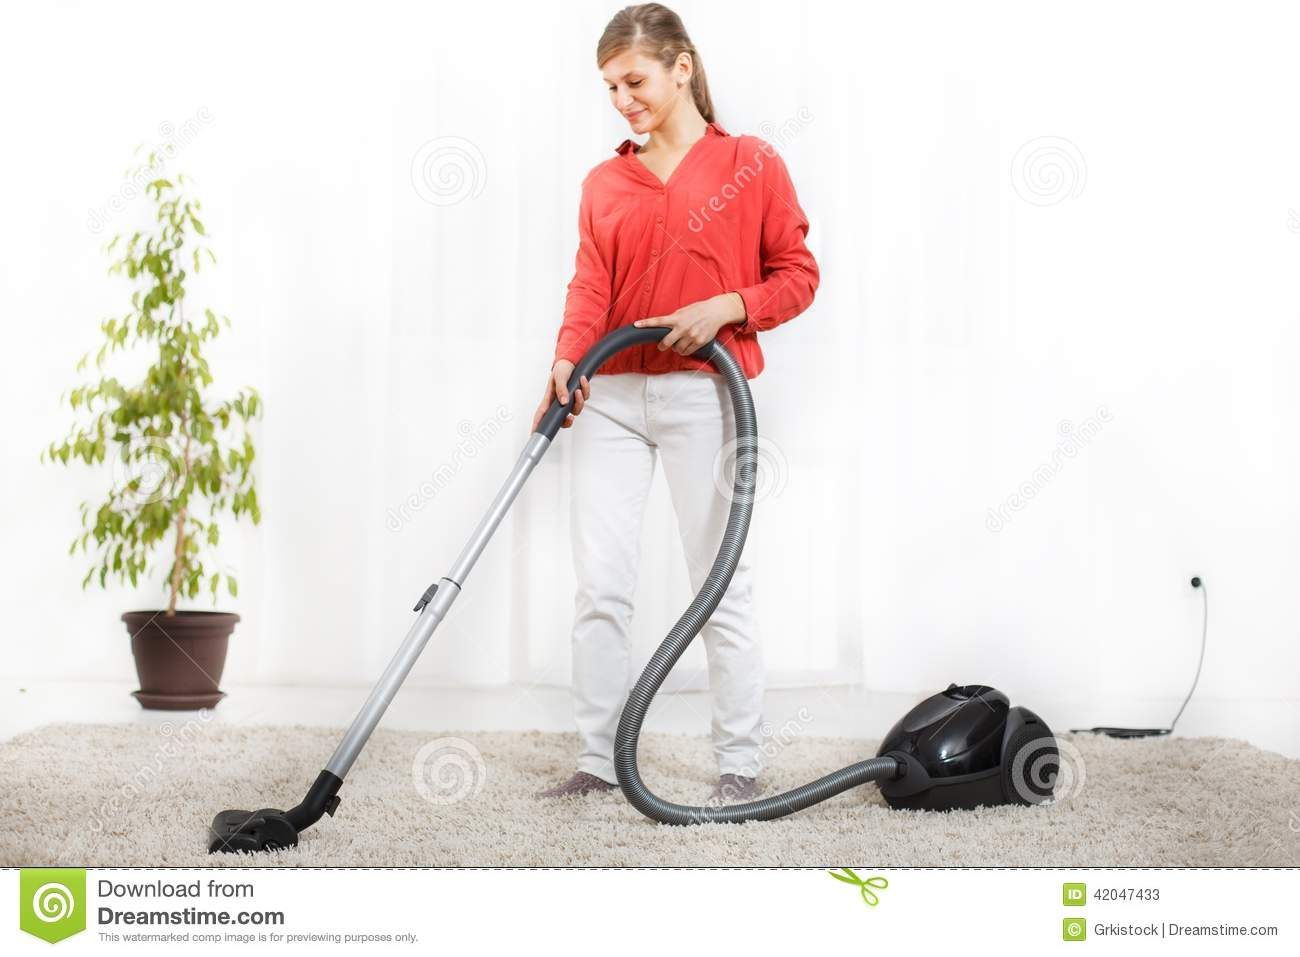 house cleaning stock photo - image: 42047433